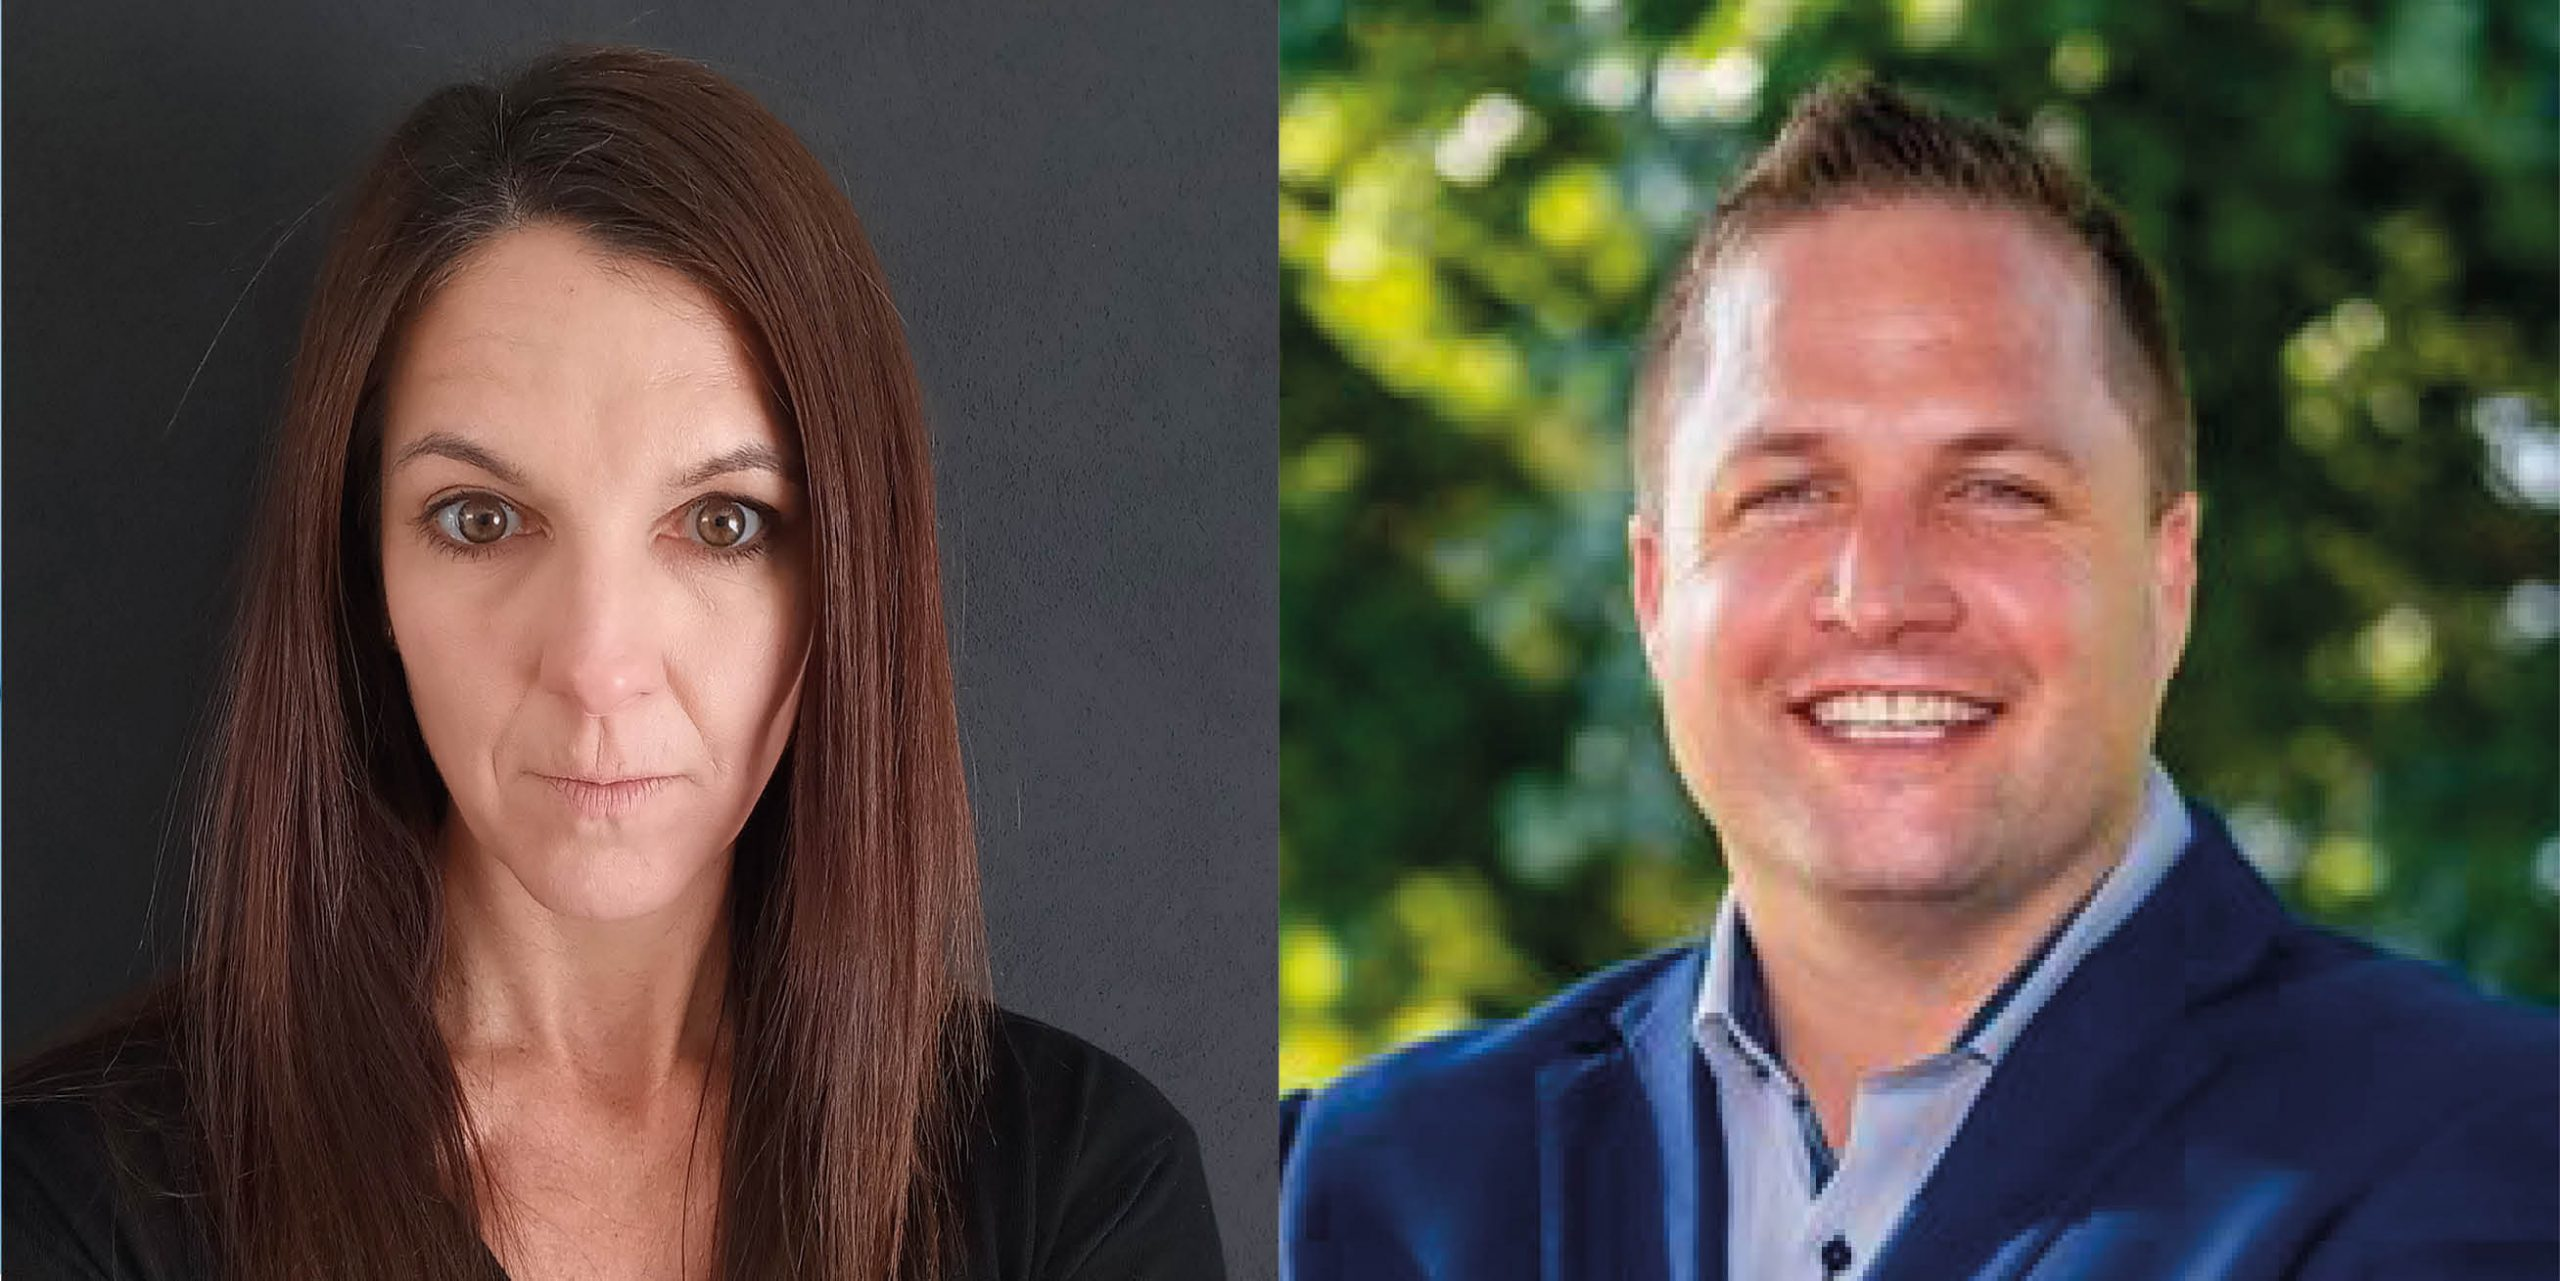 Lisa Hutsebaut, conveyancer for the TSC; Andrew Walker, founder and CEO of the SA Property Investors Network, discuss the importance of having a will for your home